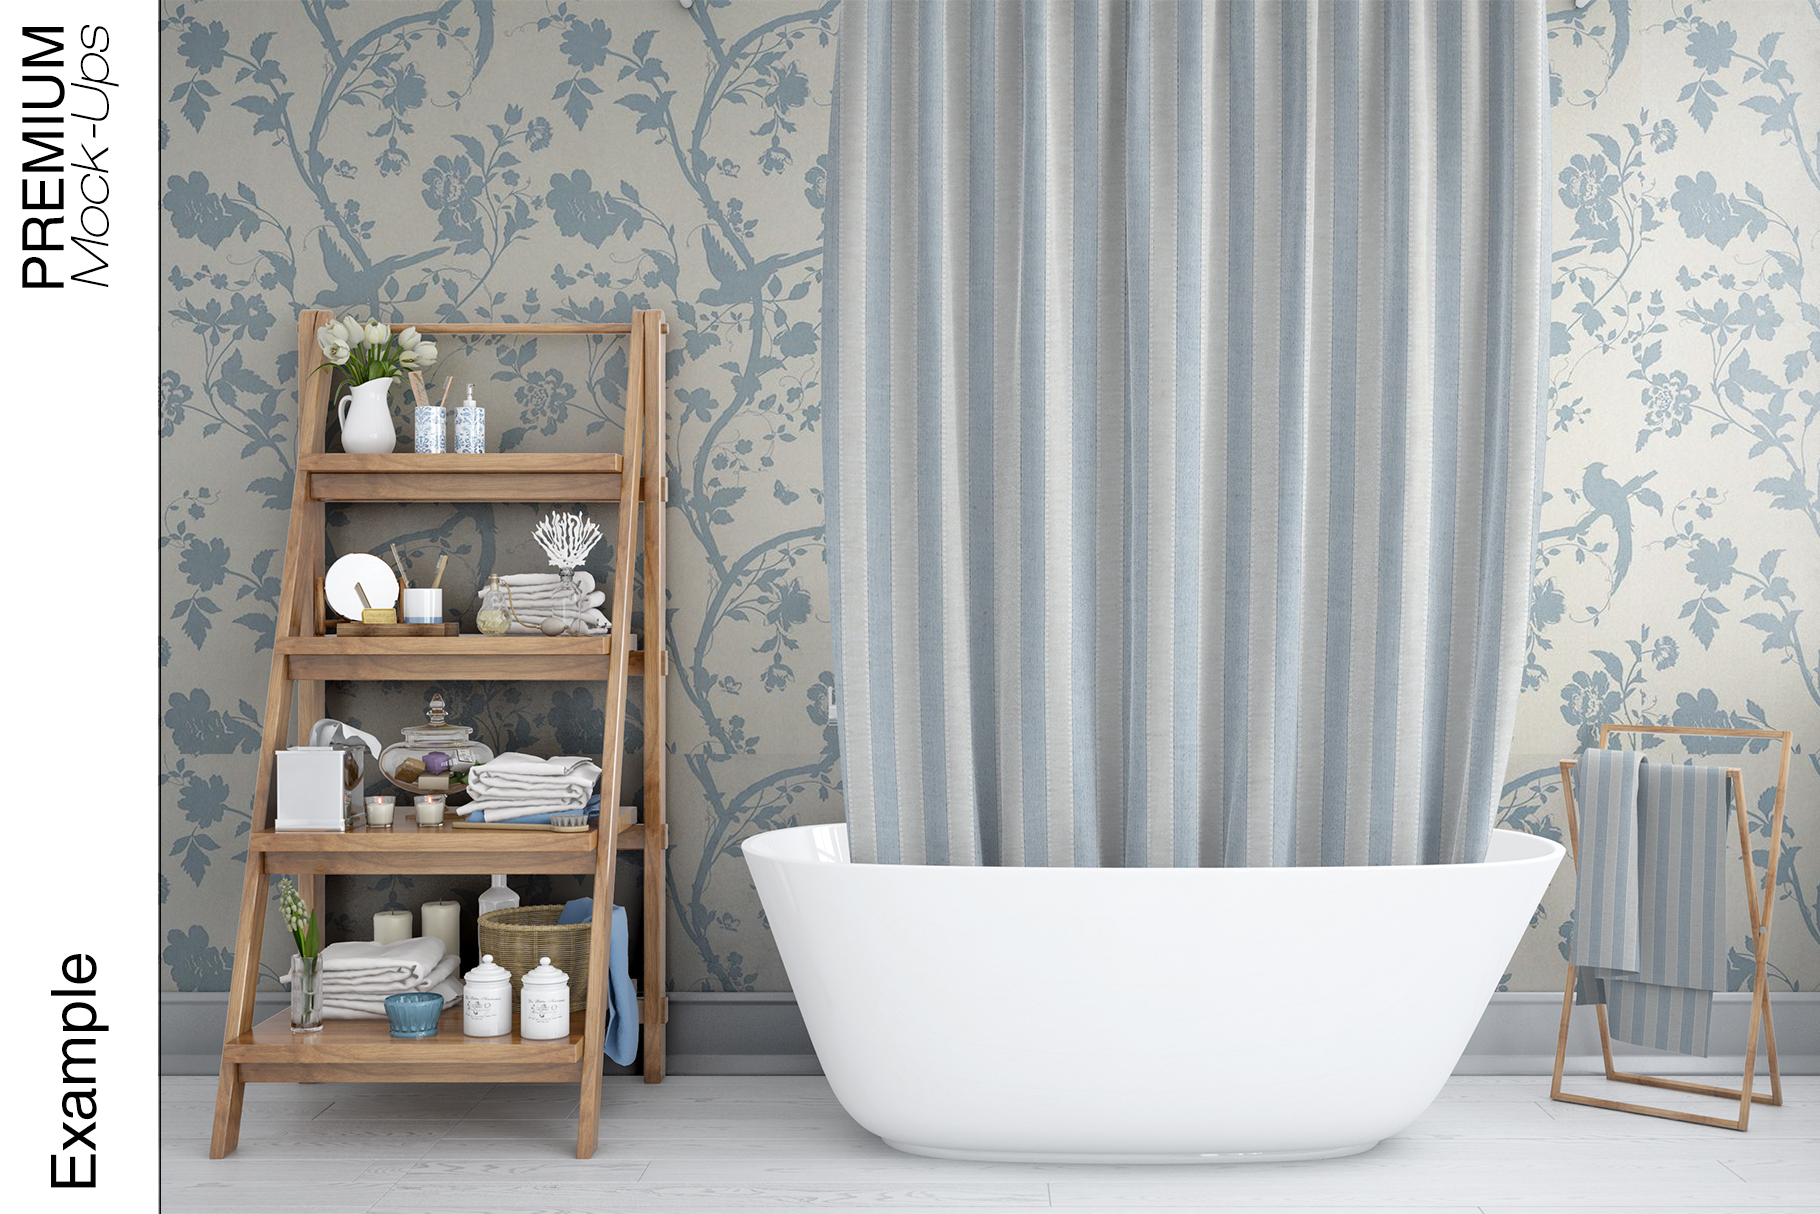 Bath Curtain Mockups example image 4